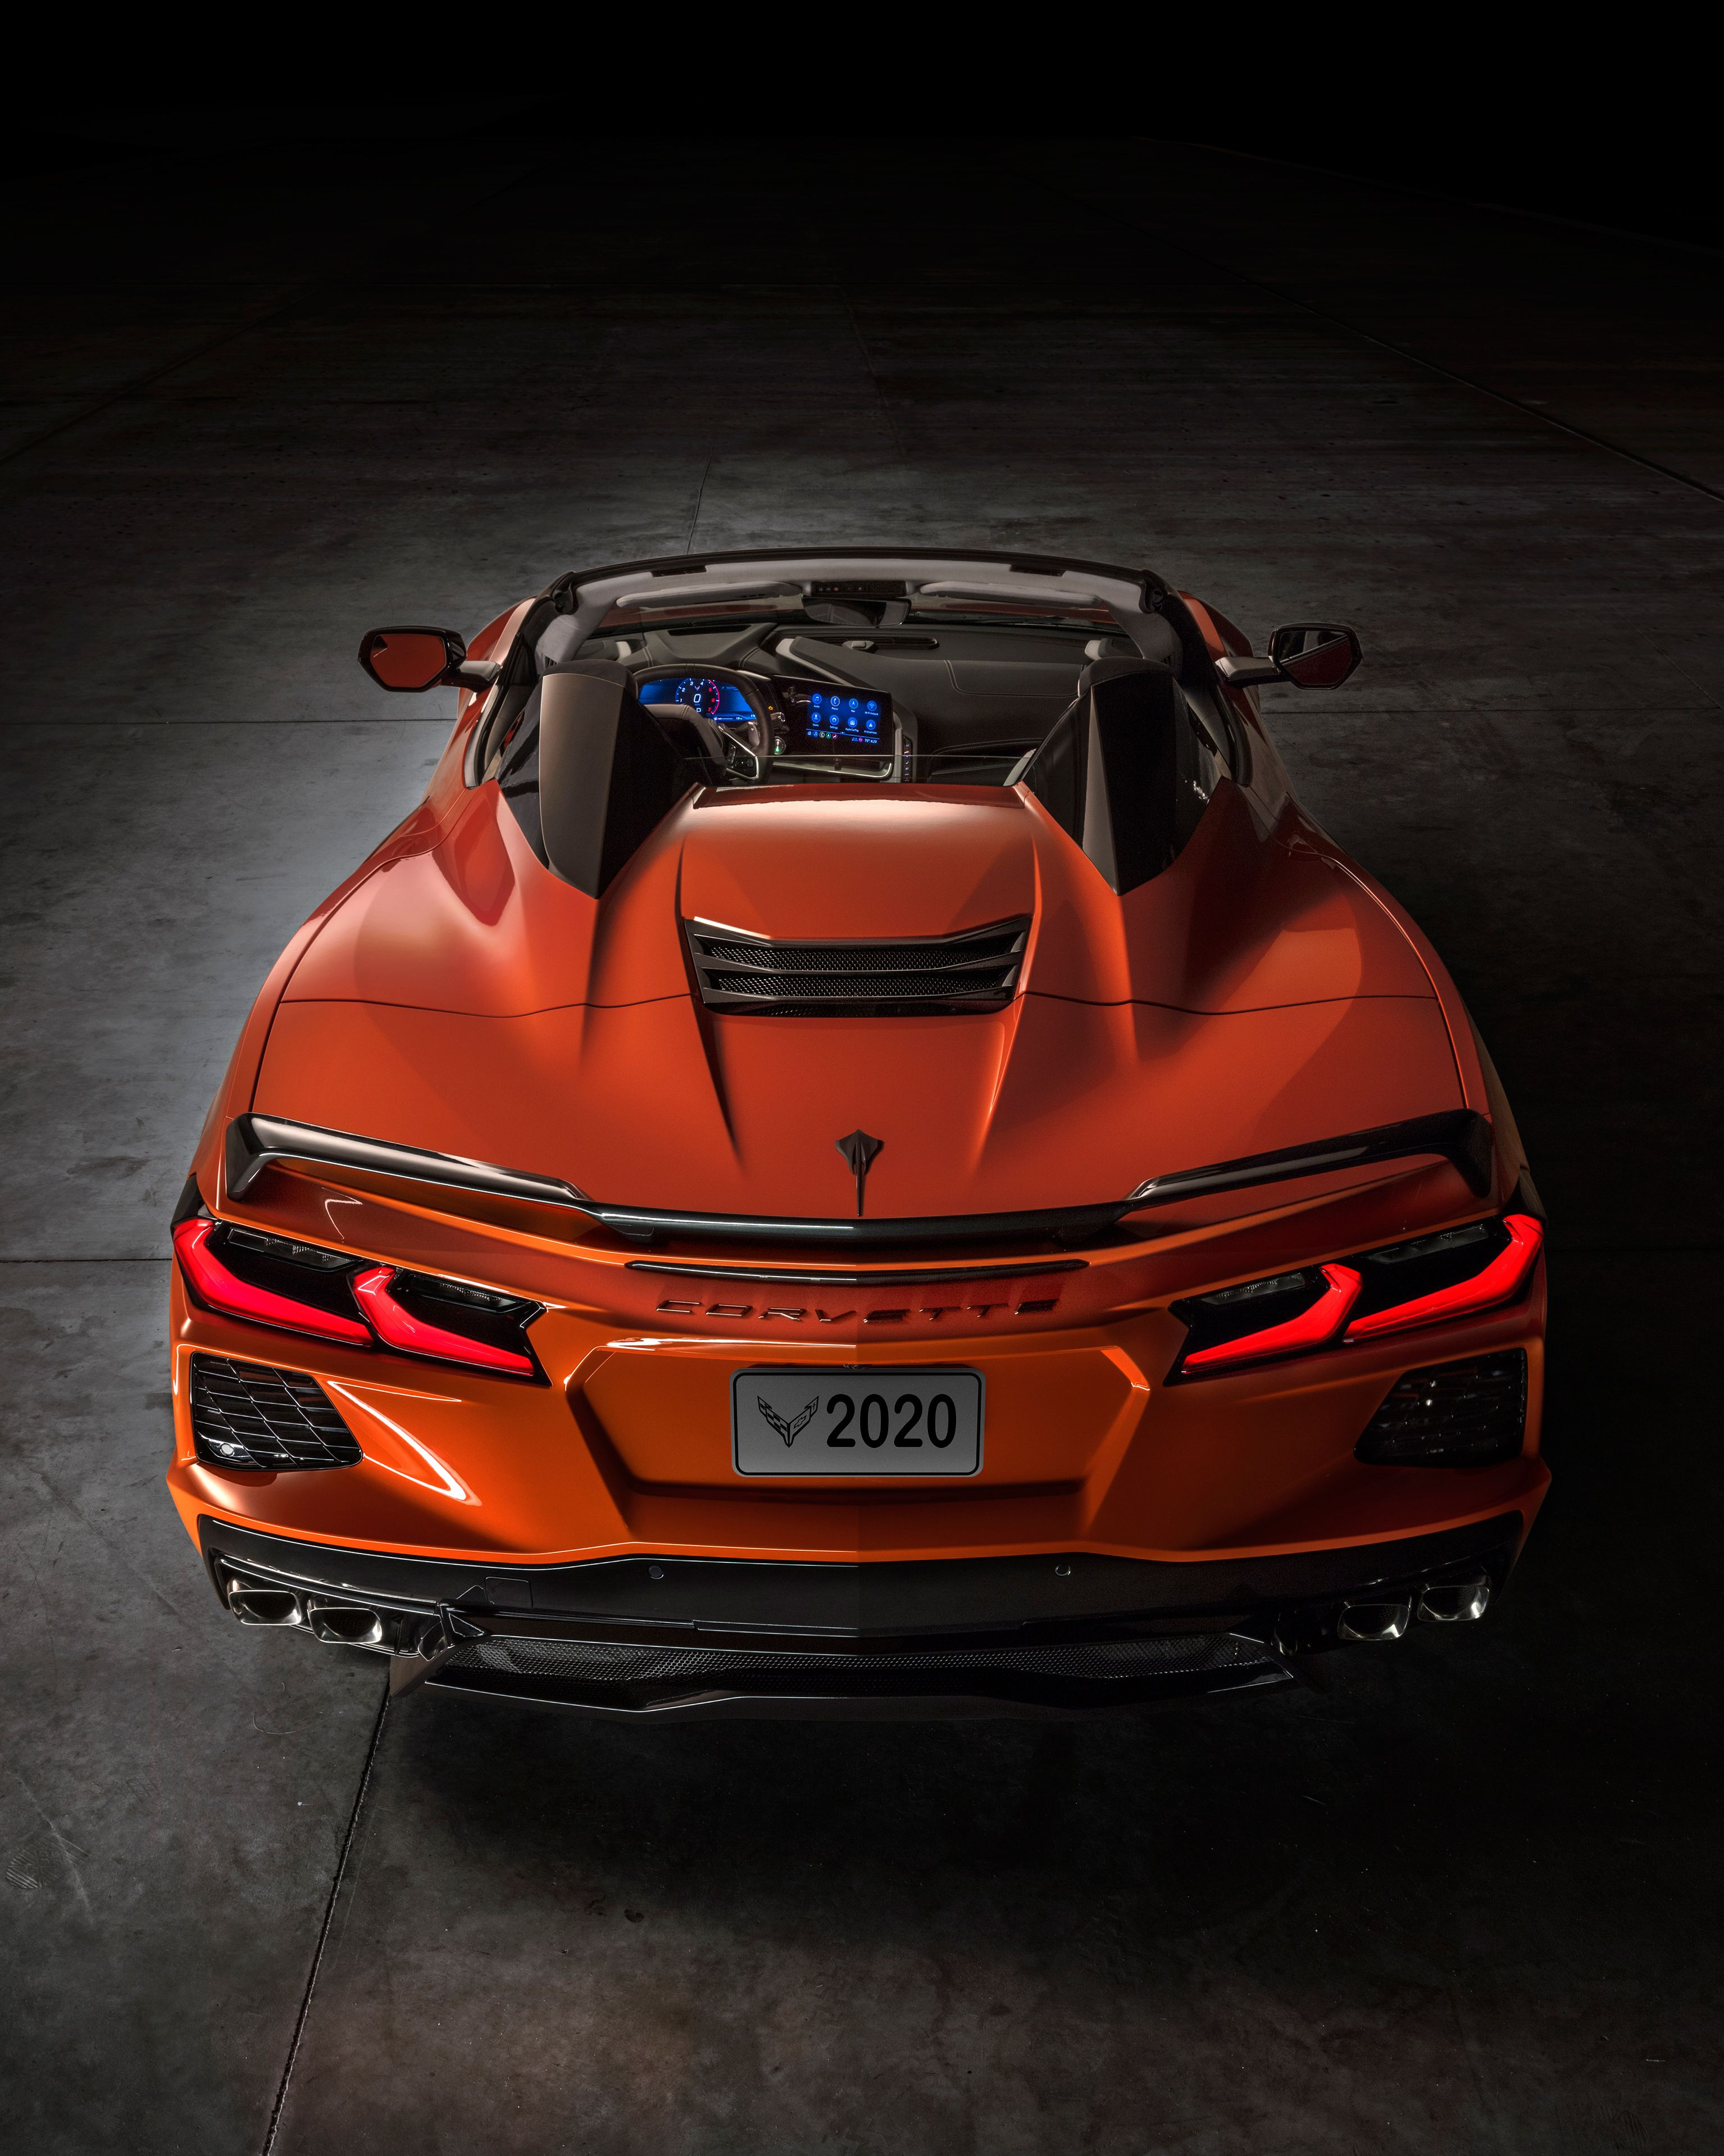 Revealed 2020 Chevrolet Corvette C8 Convertible First Official Photos Info In 2020 Corvette Convertible Chevrolet Corvette Stingray